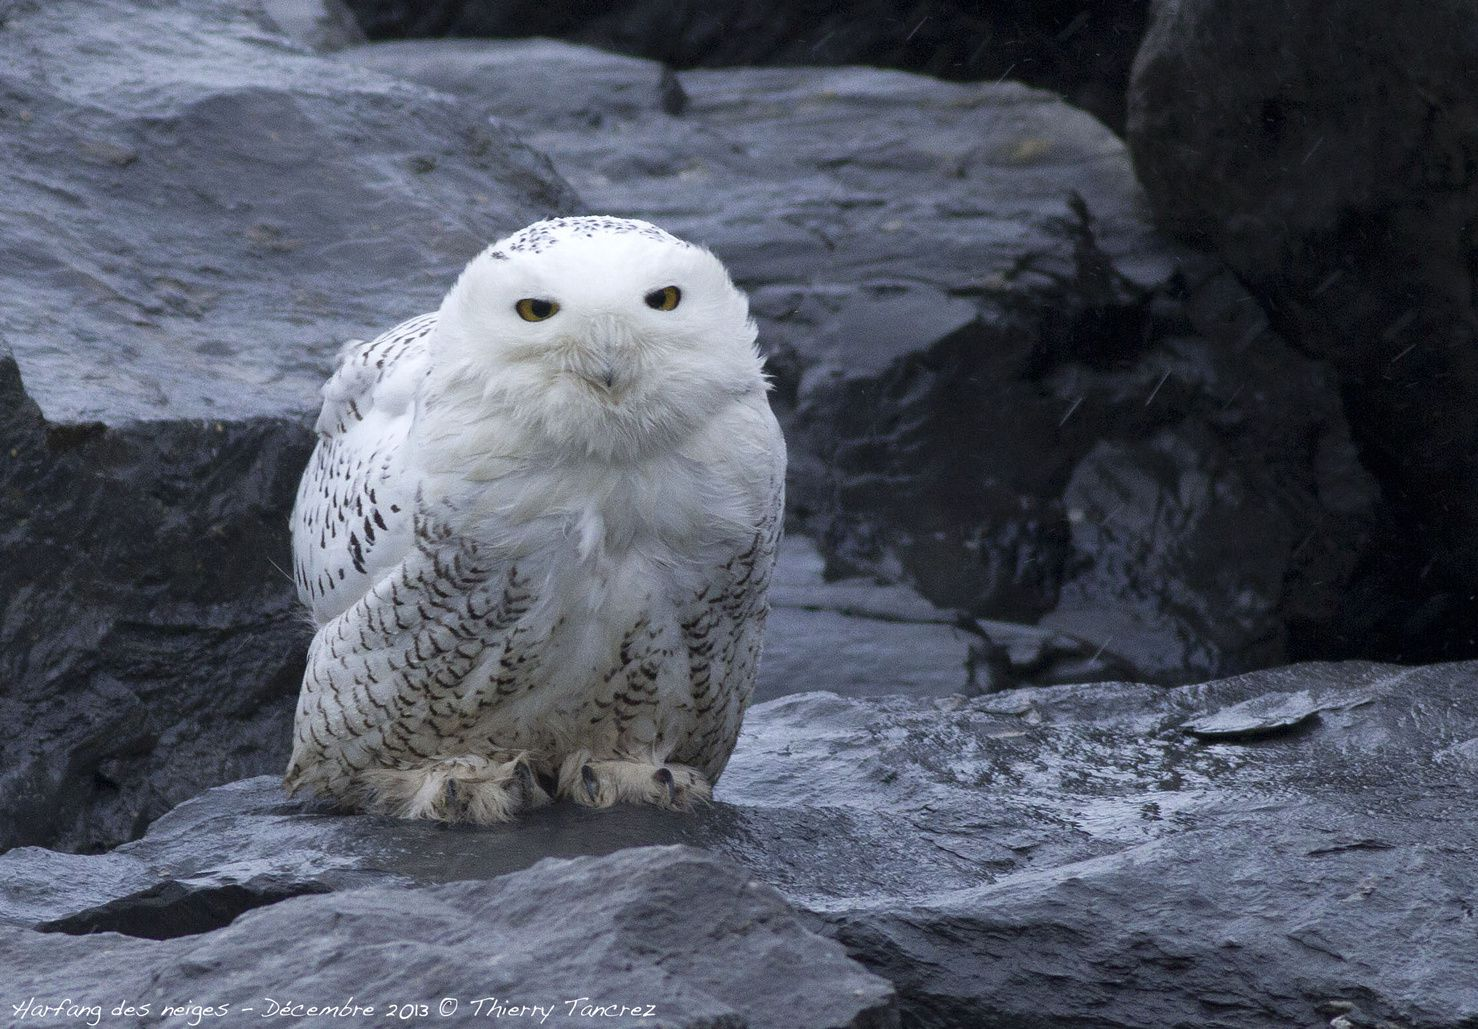 Snowy Owl aboard the Independent Concept. Photo taken by captain/crew of ship.